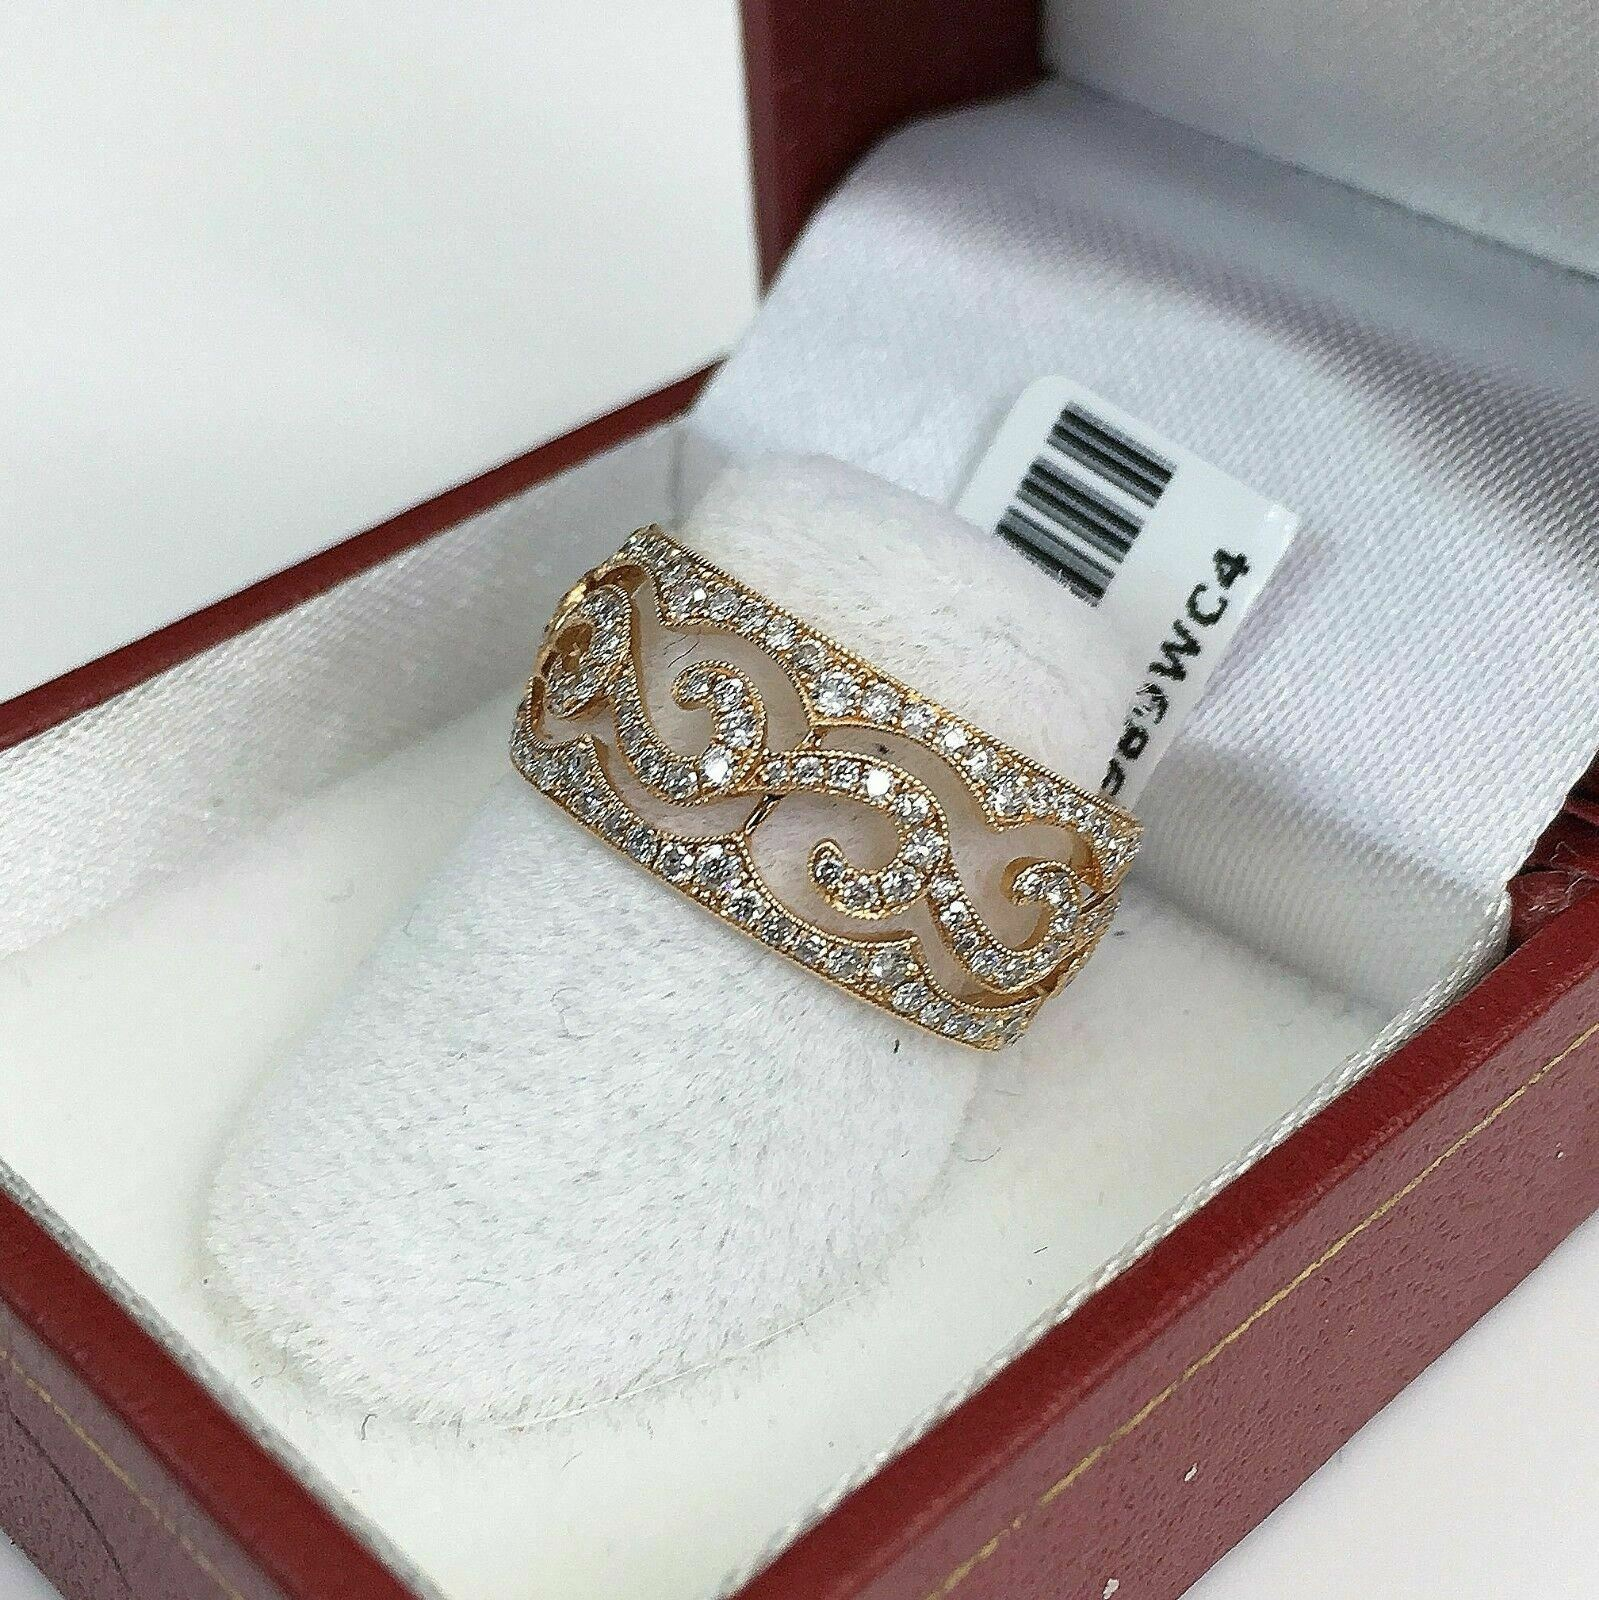 0.93 Carats t.w. Diamond Pave Eternity Ring 18K Rose Gold Brand New 80% Diamonds